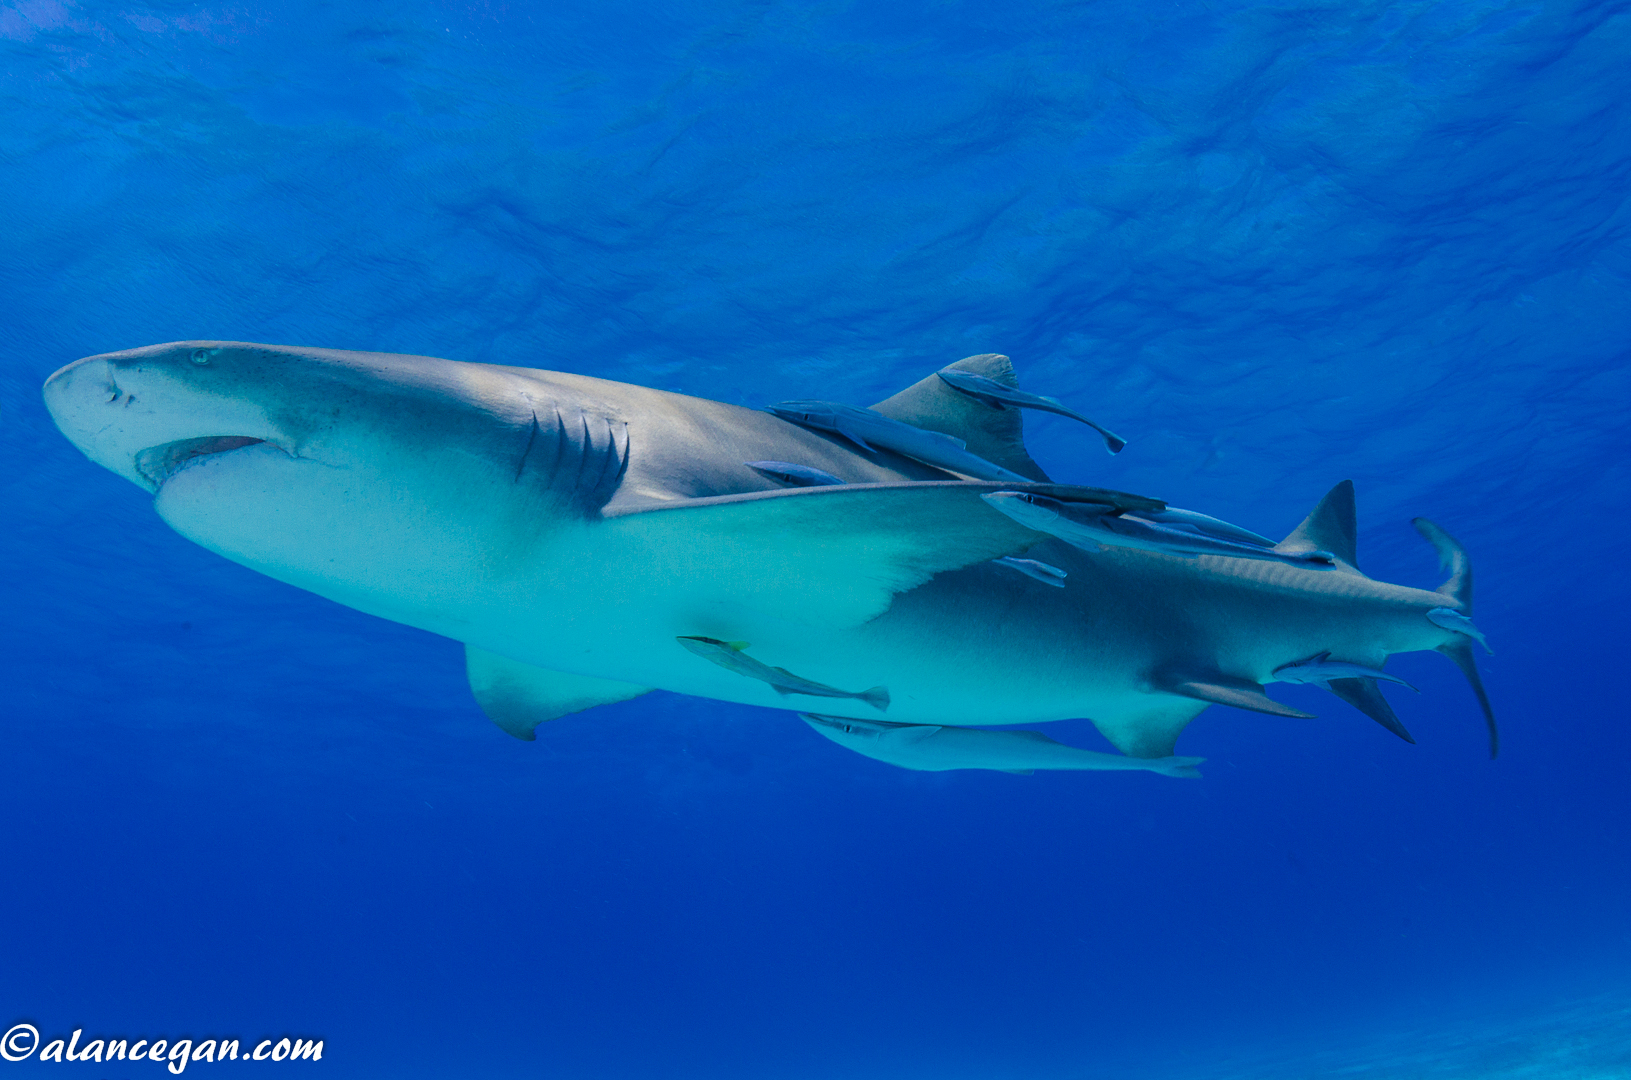 Underwater photograph of a Lemon Shark cruising the Bahamas